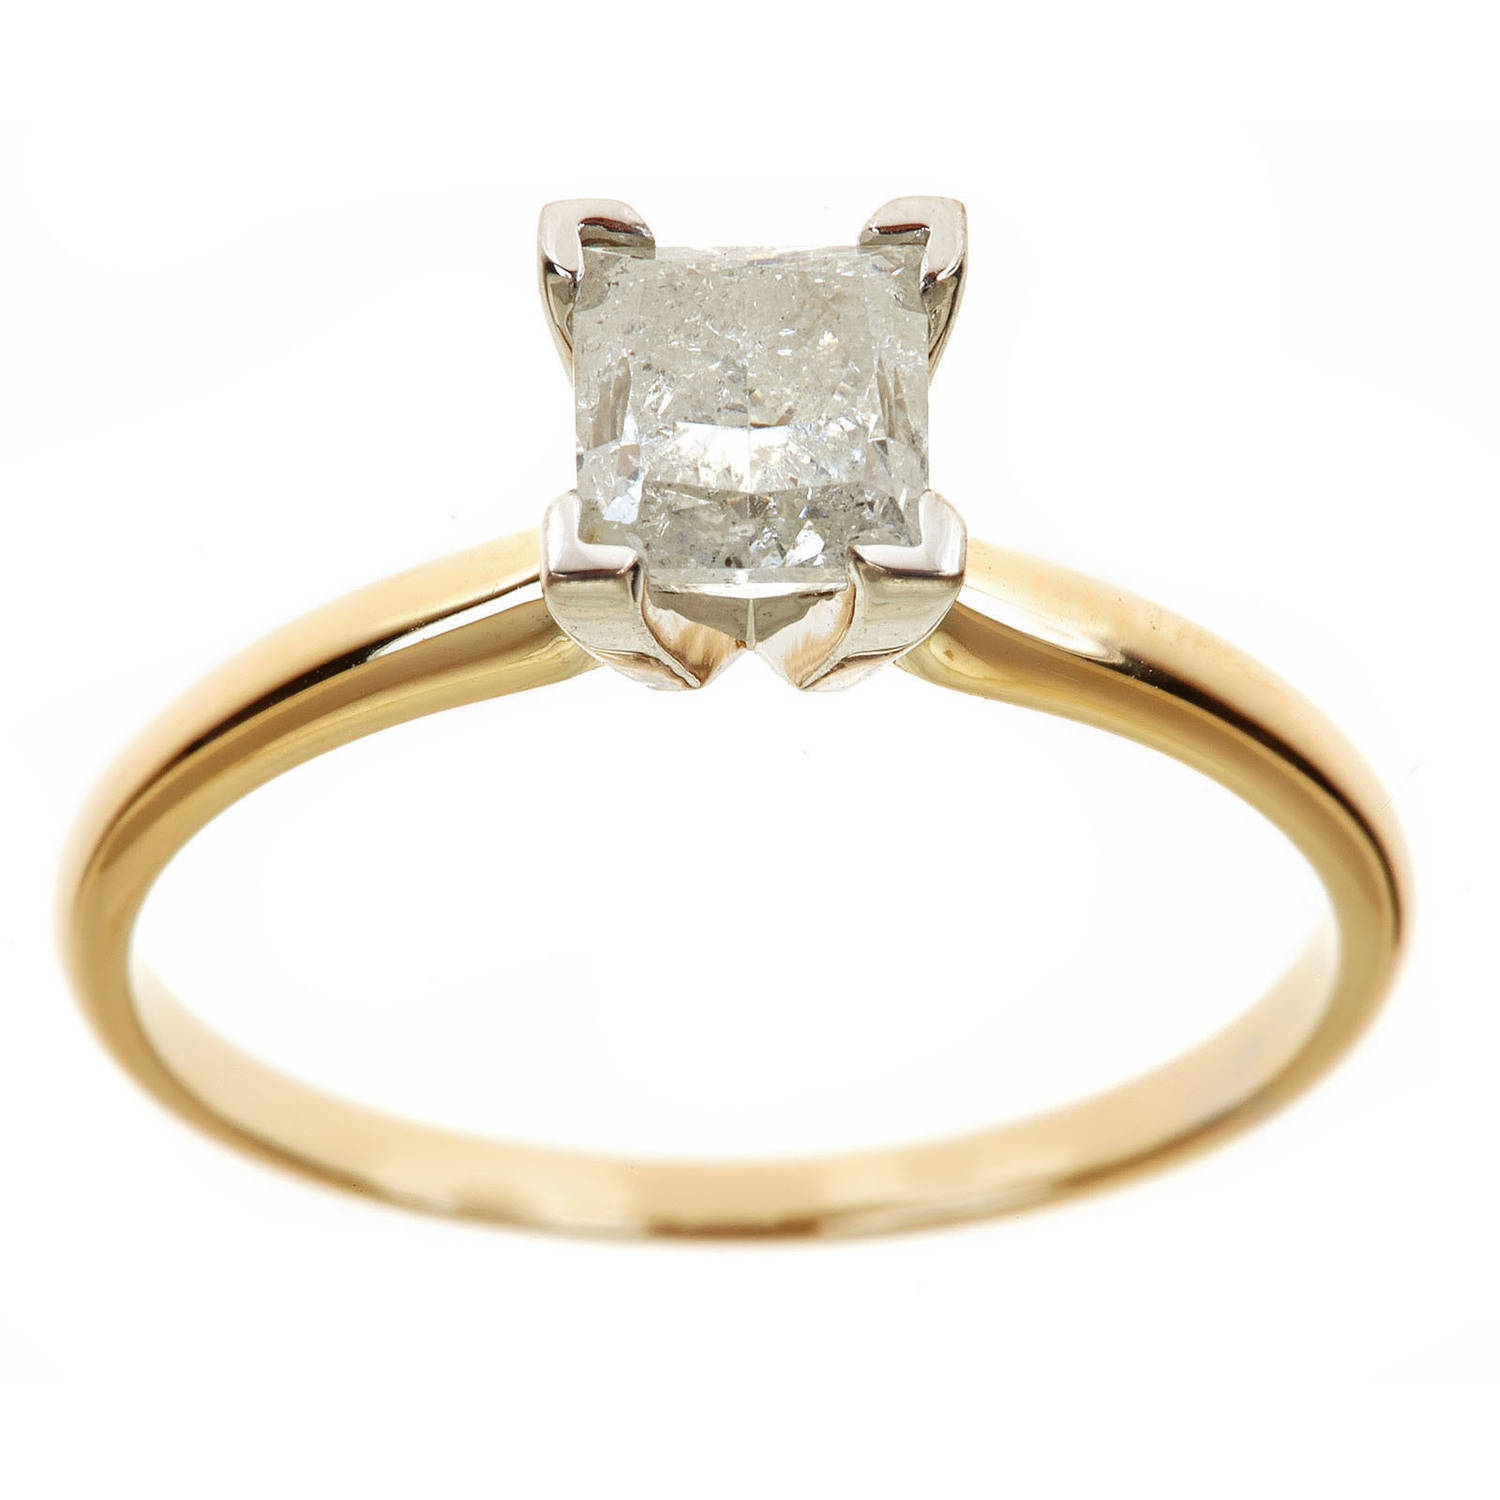 1.25 Carat T.W. Princess White Diamond 14kt Yellow Gold Solitaire Ring, IGL certified